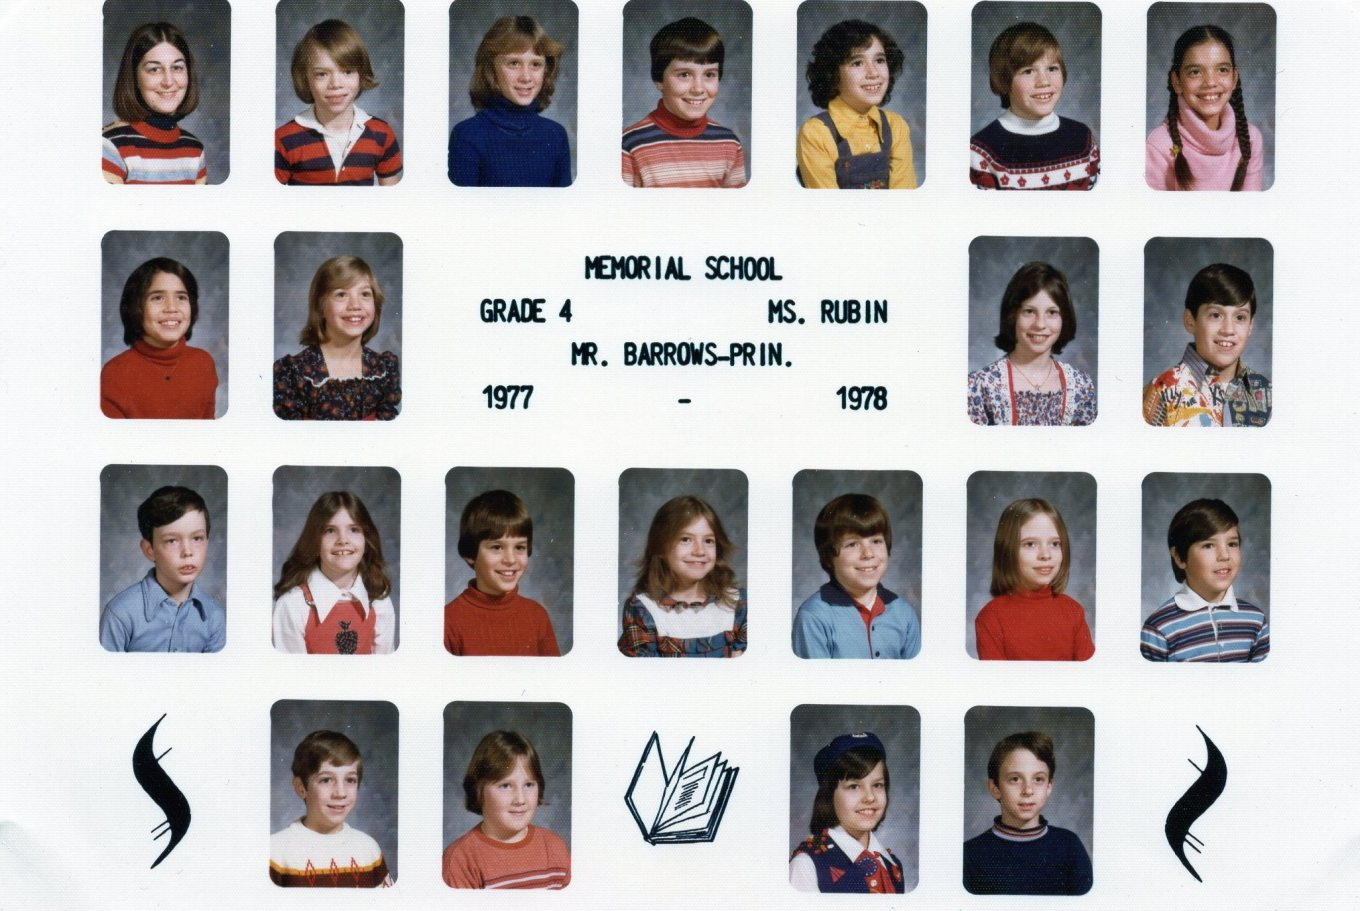 1977 Memorial School Burlington MA Rubin